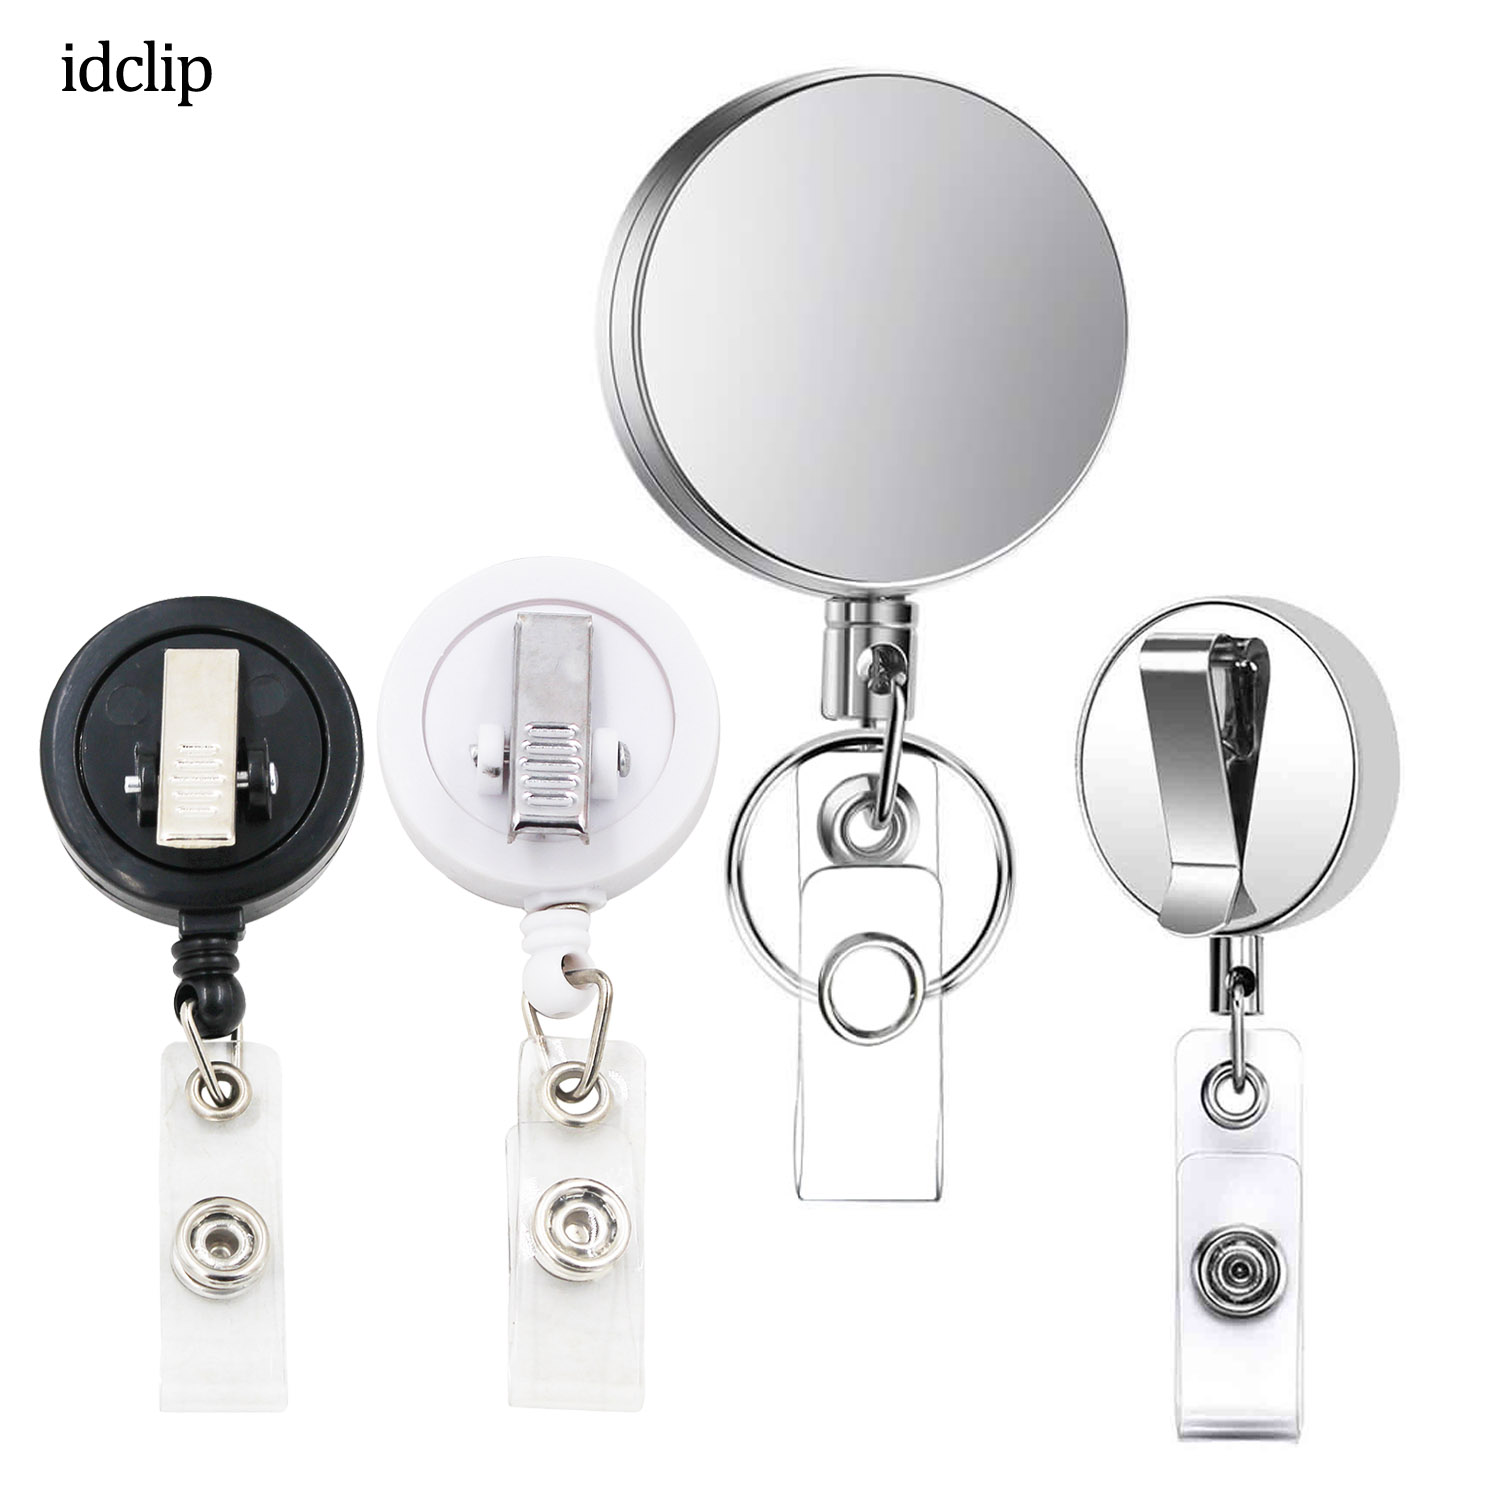 Idclip 1PC Metal Retractable Badge Holder Heavy Duty ID Badge Reels With Key Chain Belt Clip ID / Key Card